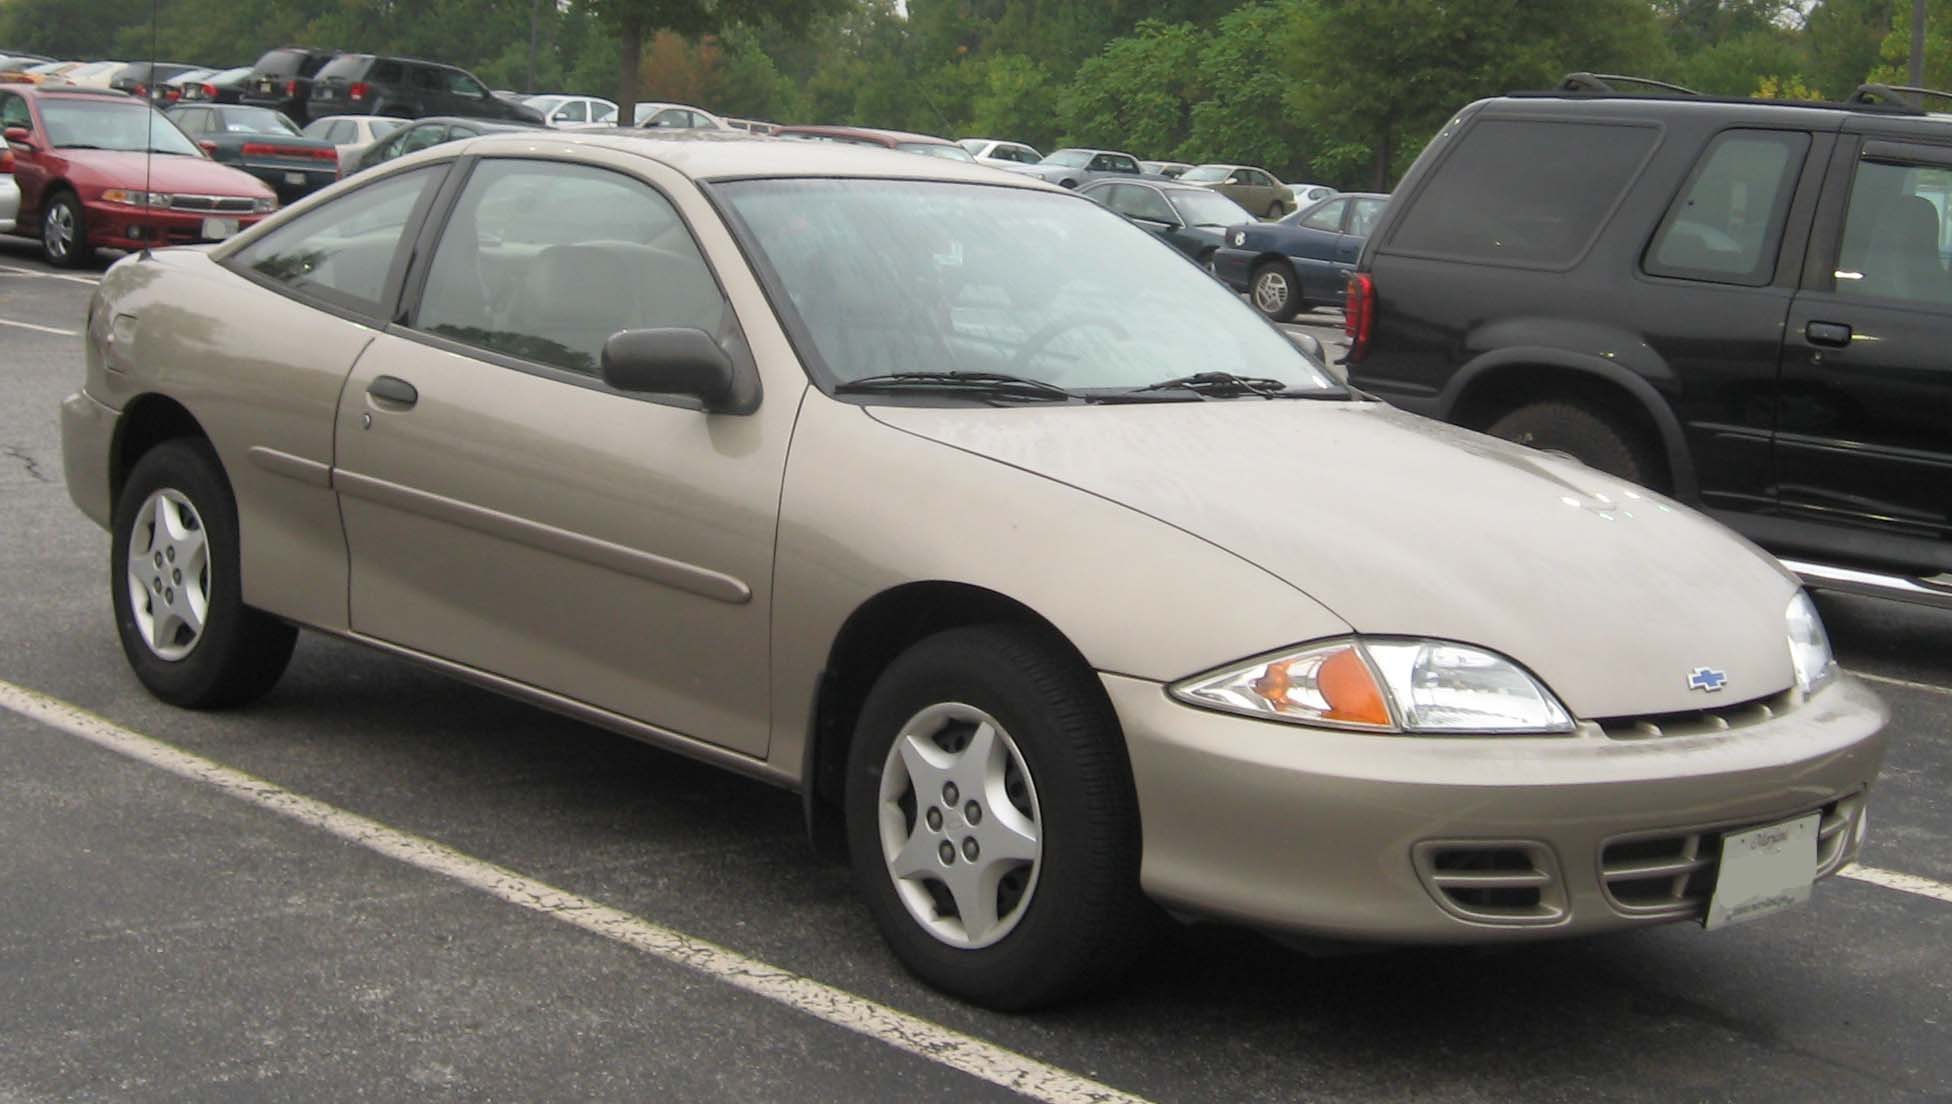 hight resolution of 2002 chevrolet cavalier z24 coupe photo 1